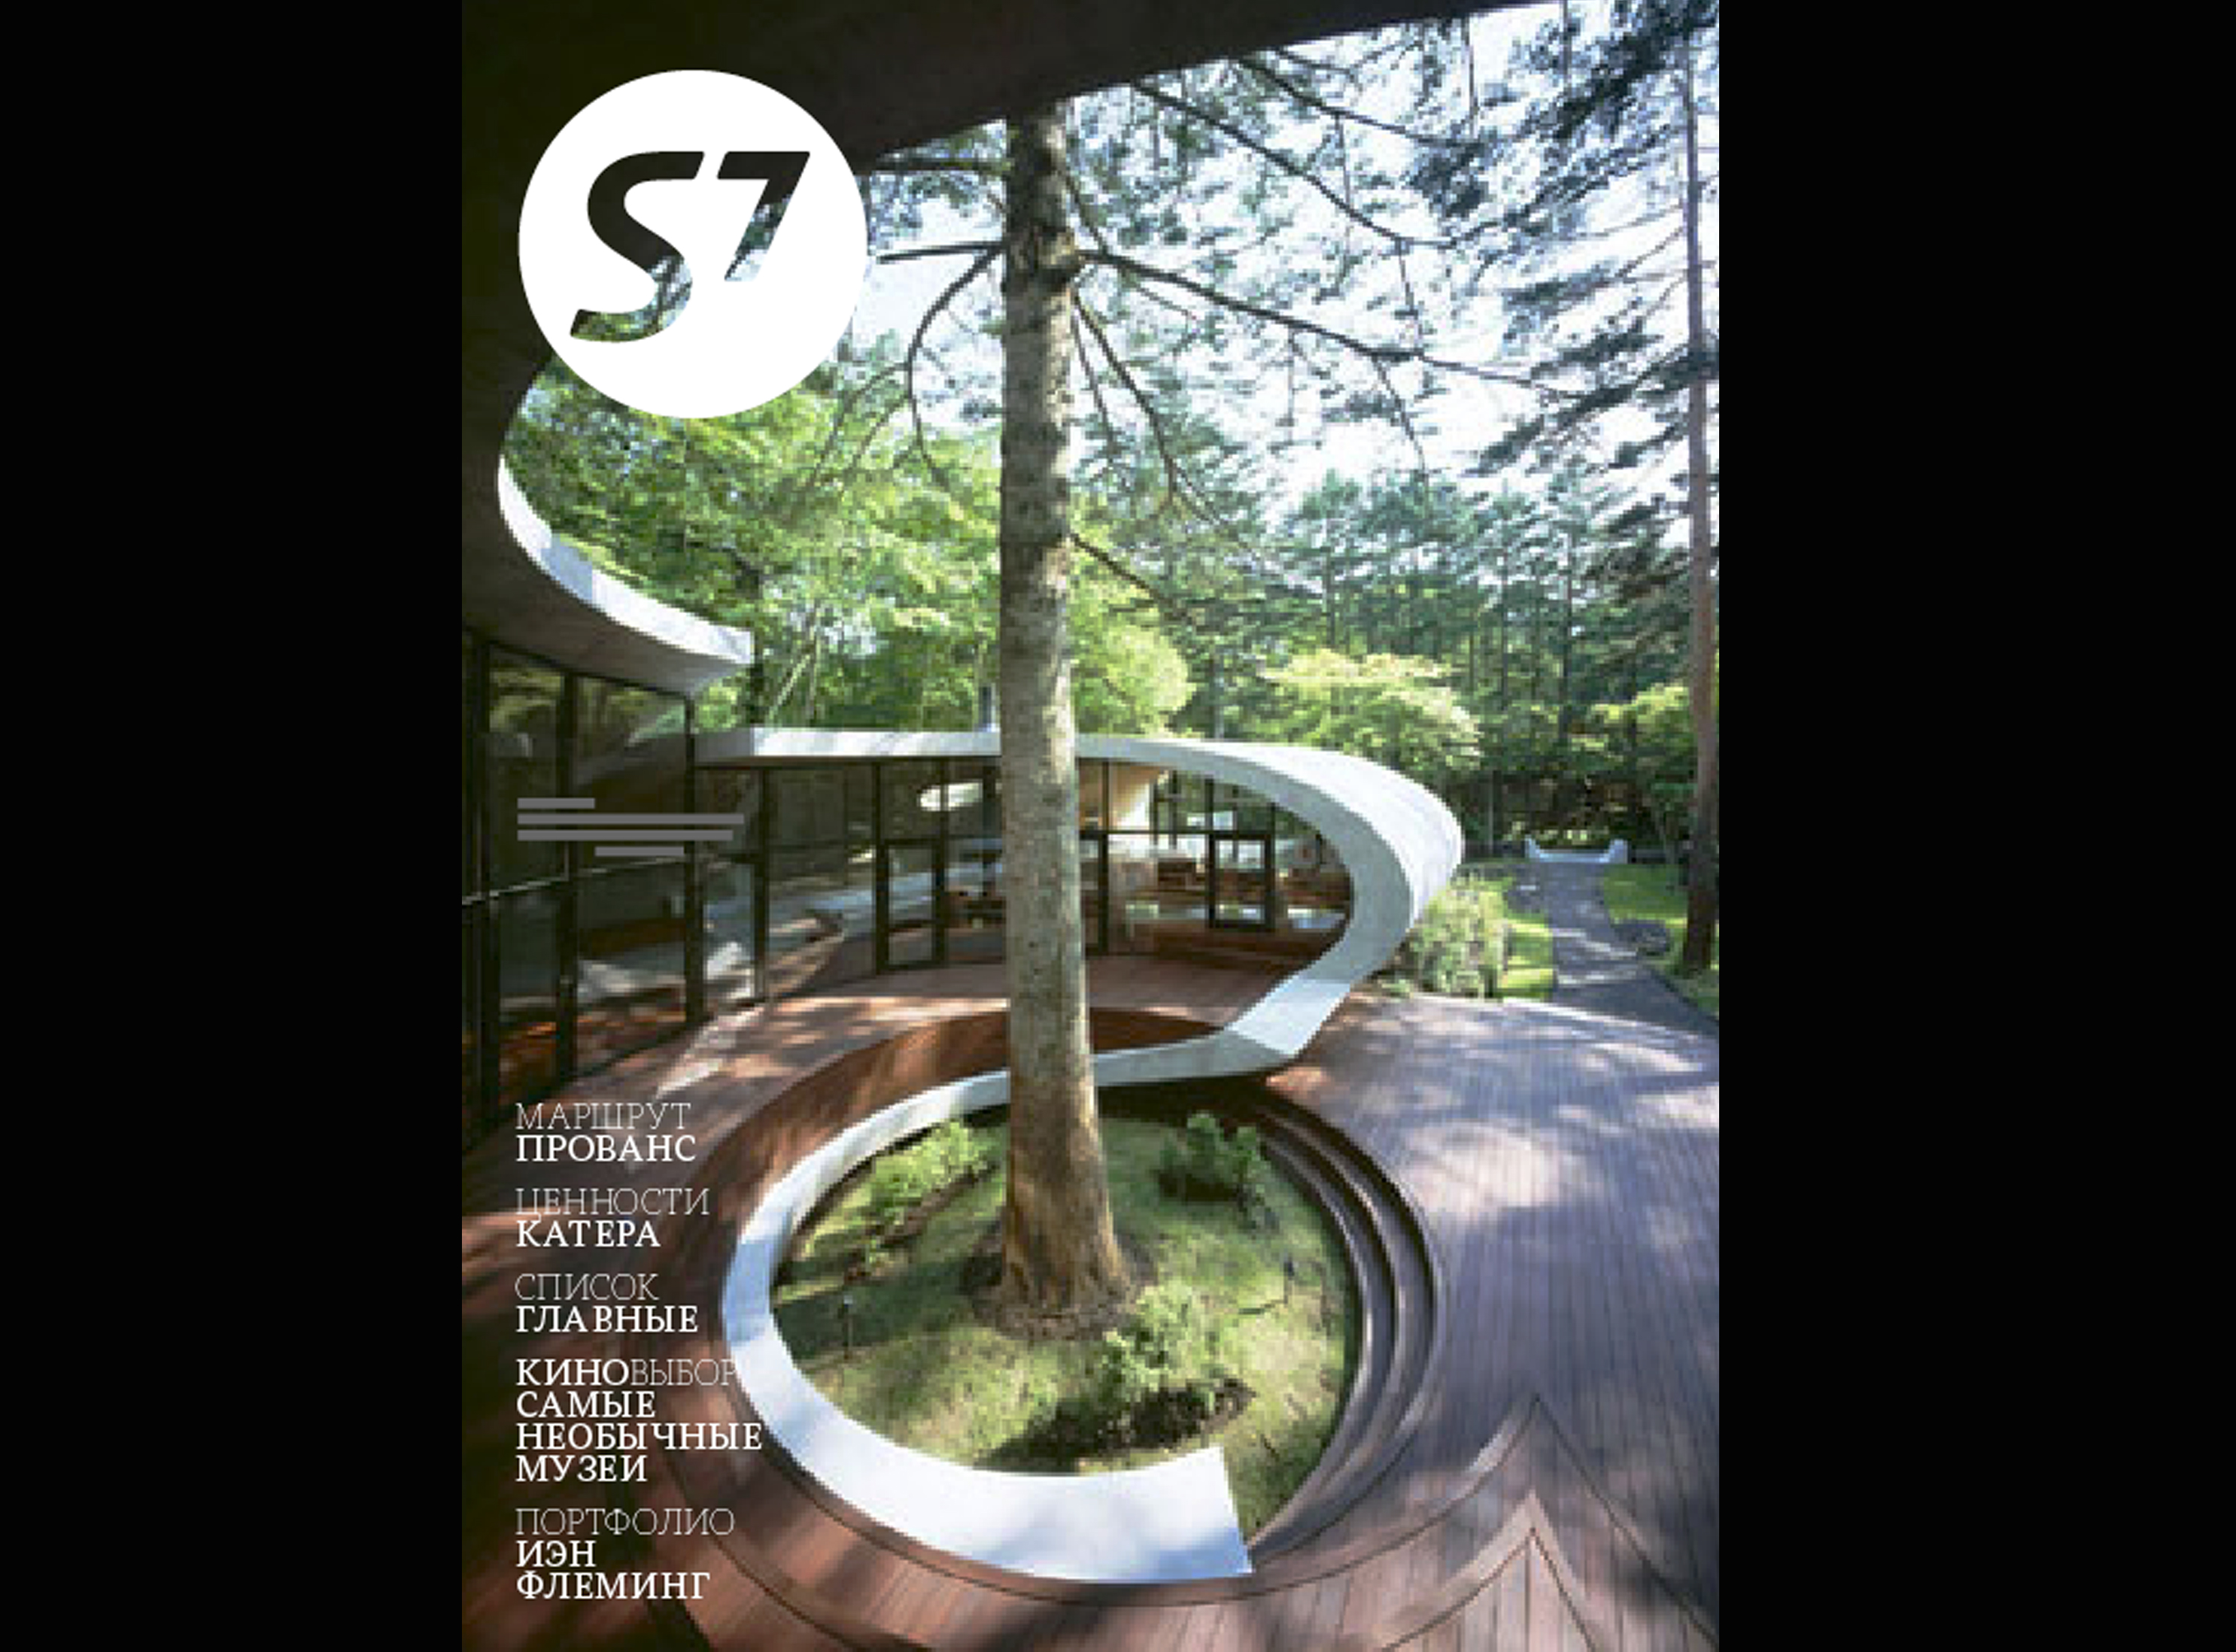 S7 magazine for business class